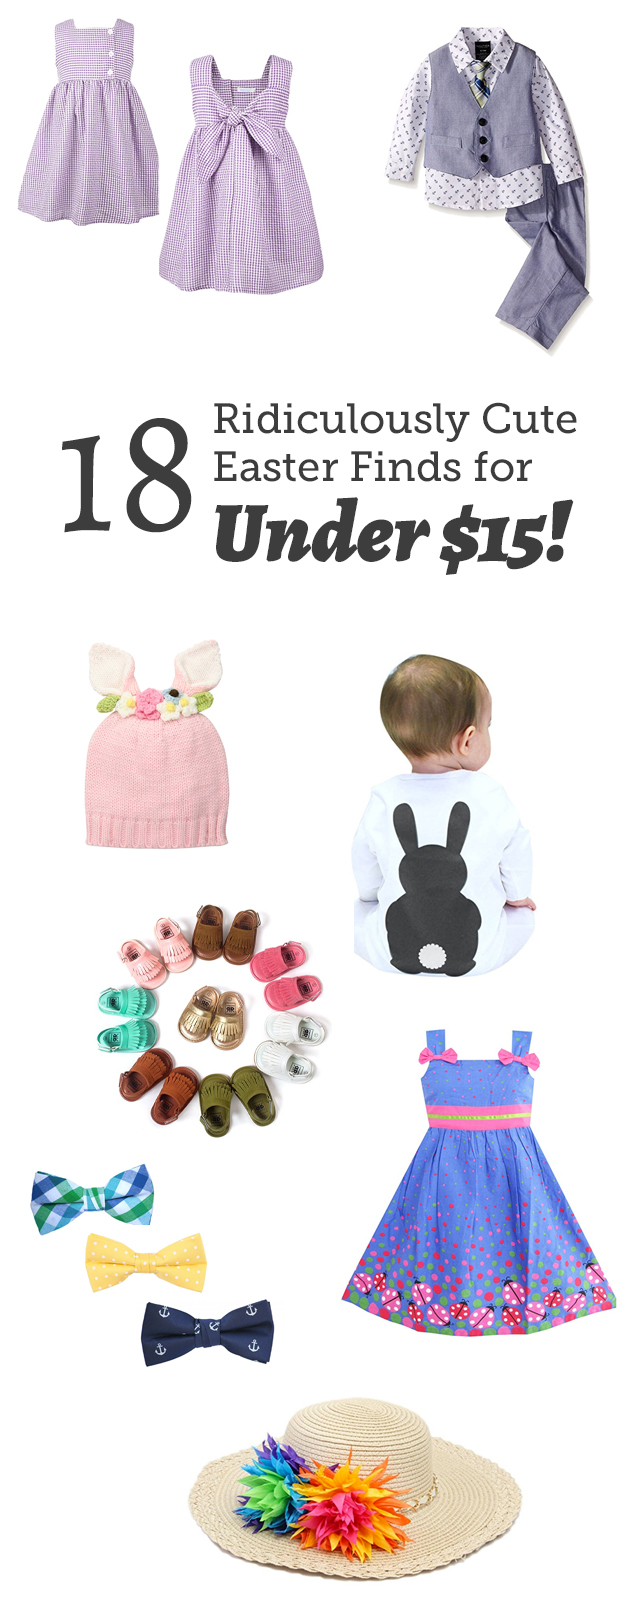 f1efe2e4d1ea Hot Find: 18 Ridiculously Cute Easter Pieces for Under $15! - Modern ...